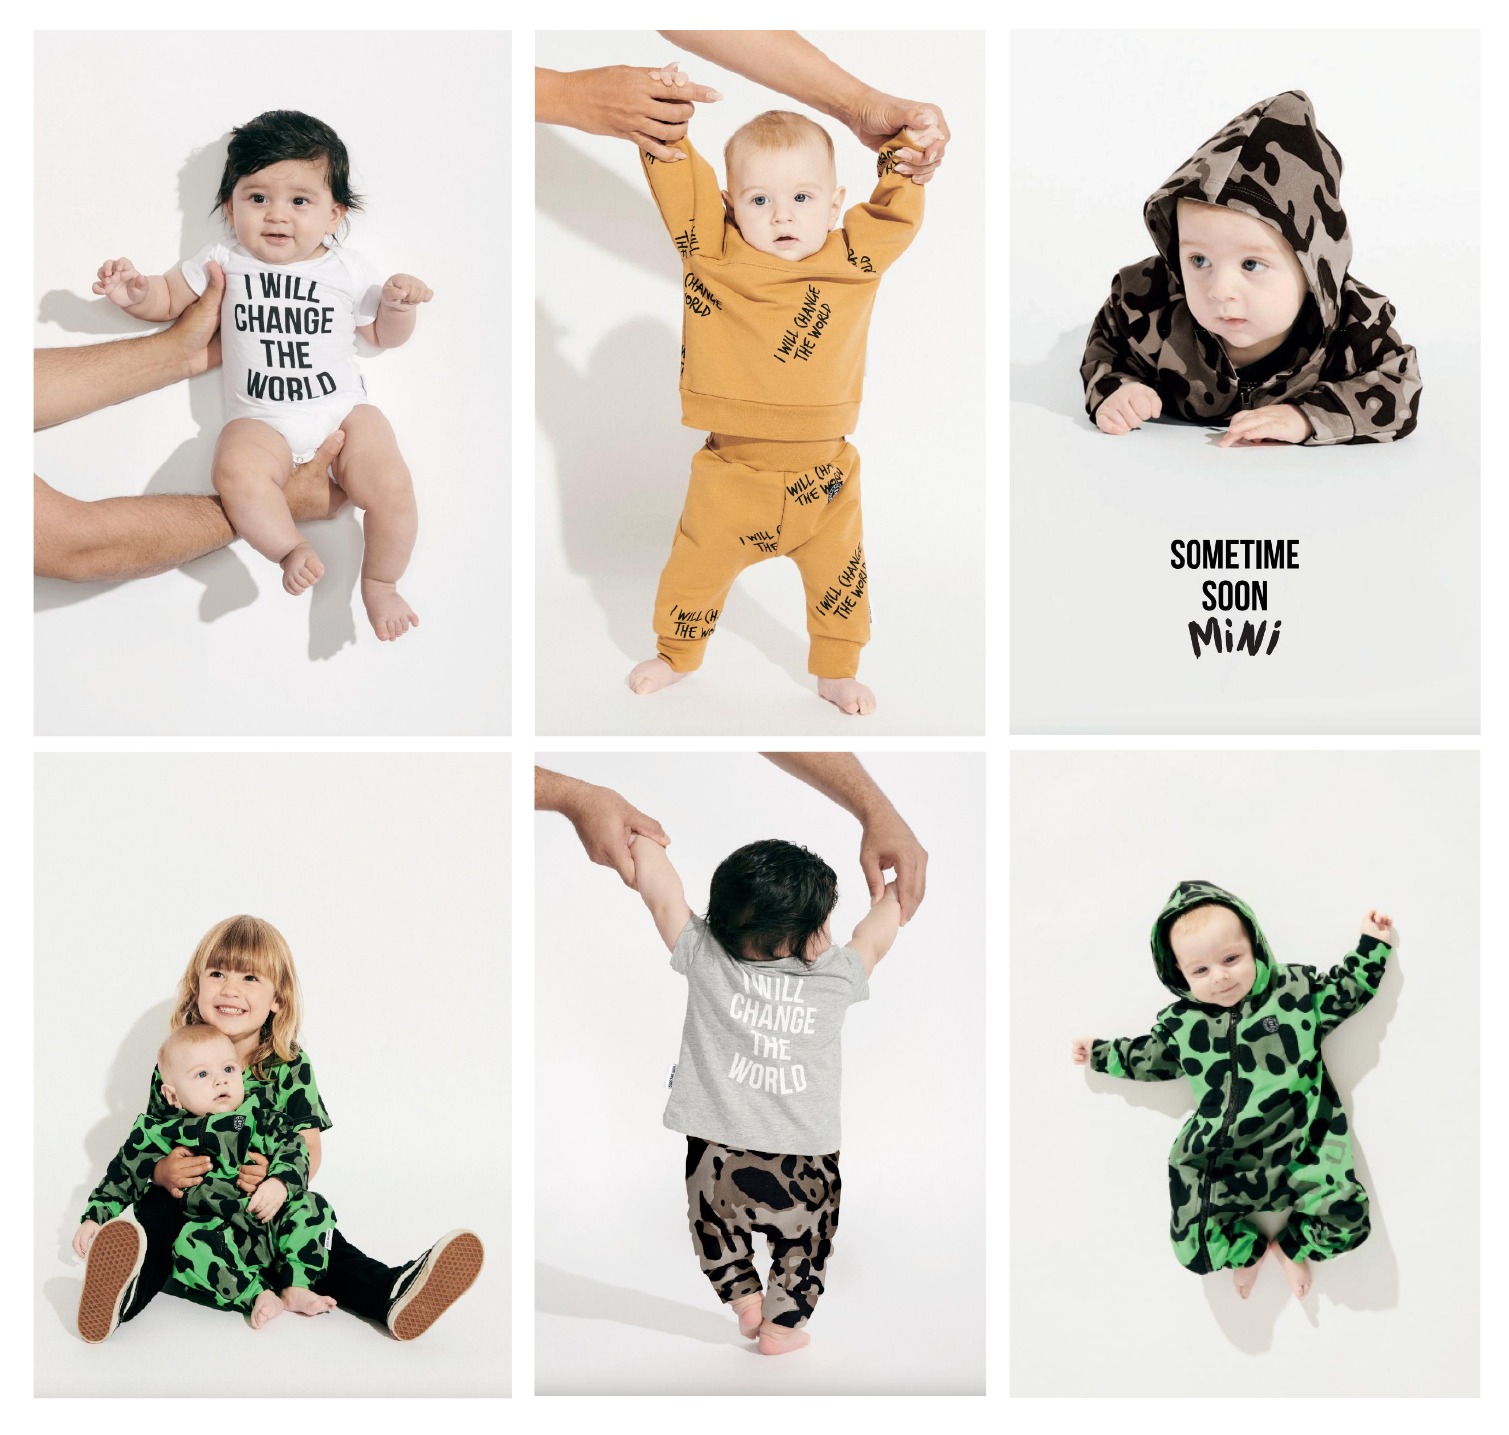 Renowned for its contemporary, streetwear-inspired aesthetics and high-quality materials, established Denmark-based kids' brand  SOMETIME SOON  is launching a new  MINI  collection for infants & toddlers. The line is made with 100% organic fabrics & materials including oekotex certified to standard 100, meaning less chemicals for baby and mother Earth.    AB SPOON SHOWROOM     Suite A677 | Contact:  beatriz@abspoon.com  or 213.688.9614